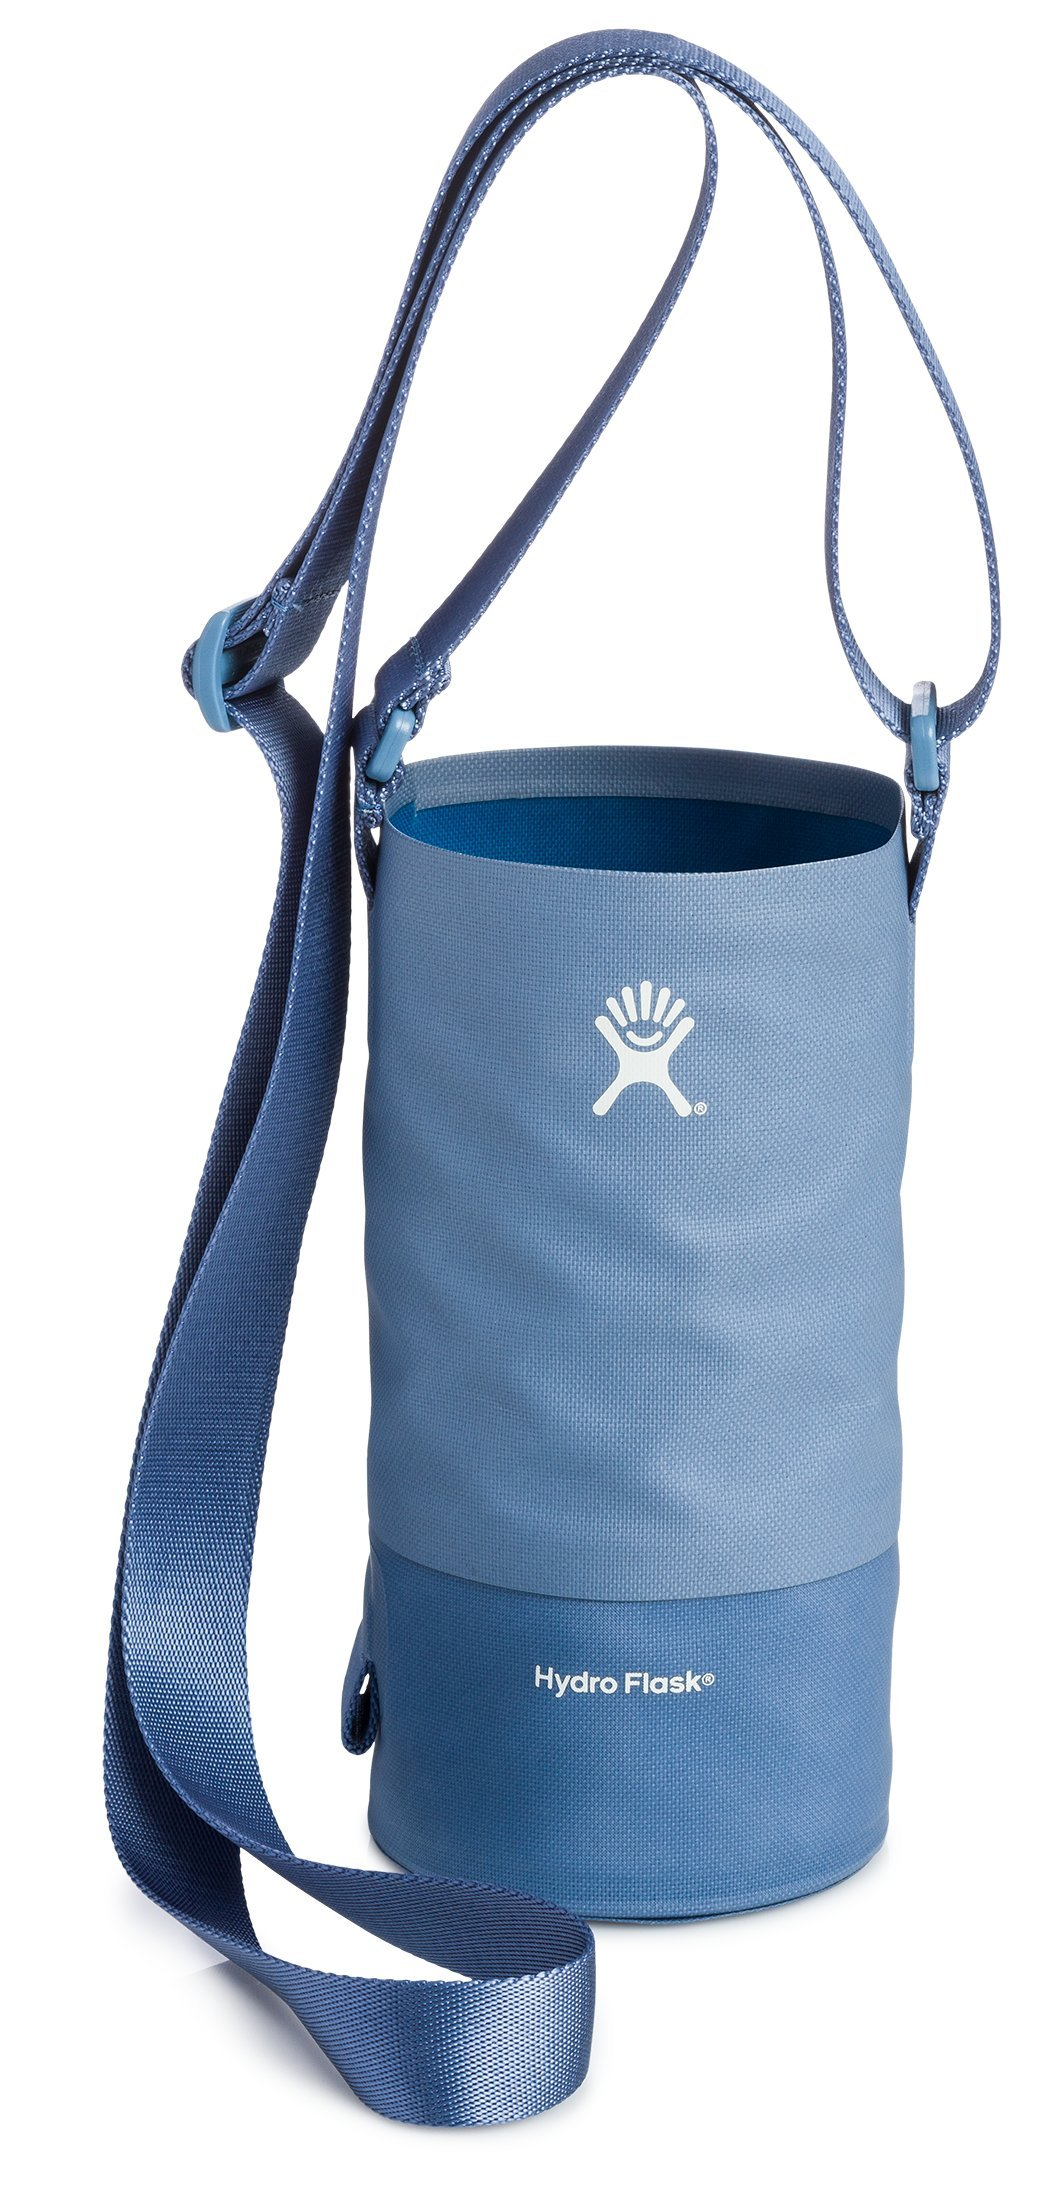 Hydro Flask Large Soft Sided Nylon Tag Along Water Bottle Sling with Pockets, Storm (Fits 32 oz and 40 oz Bottles)